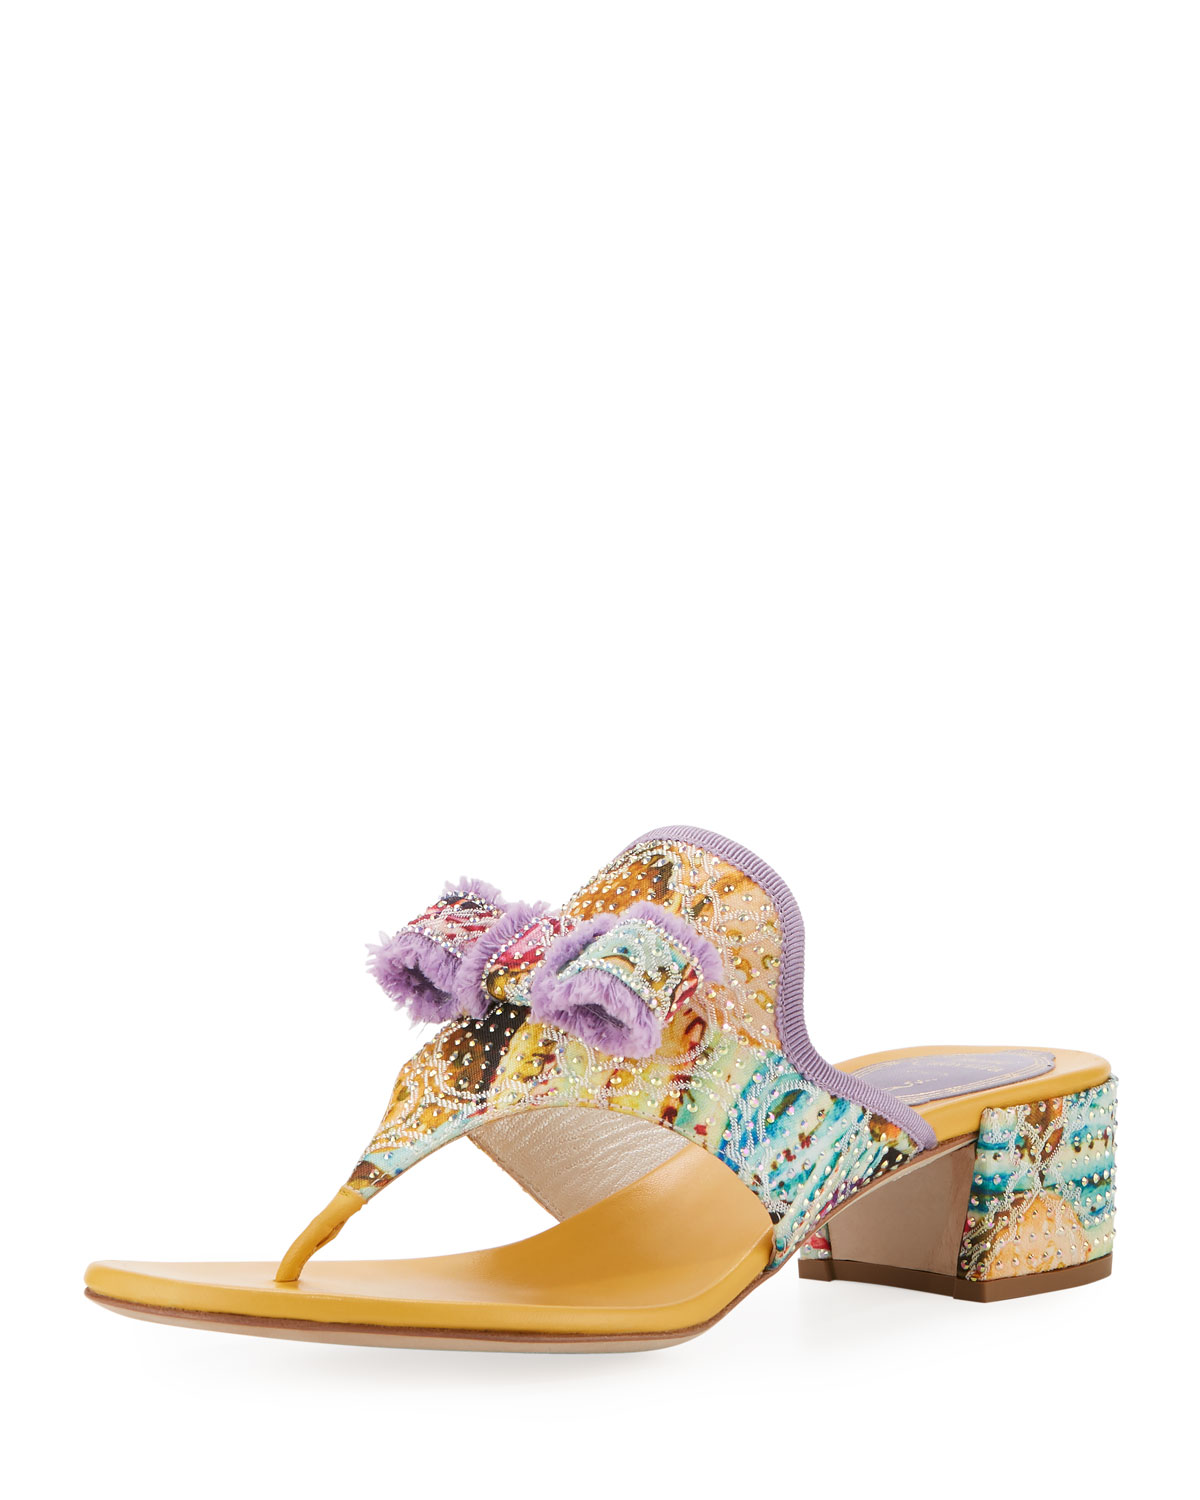 5f5df3e8ecf3ac Rene Caovilla Floral Thong Sandal with Bow